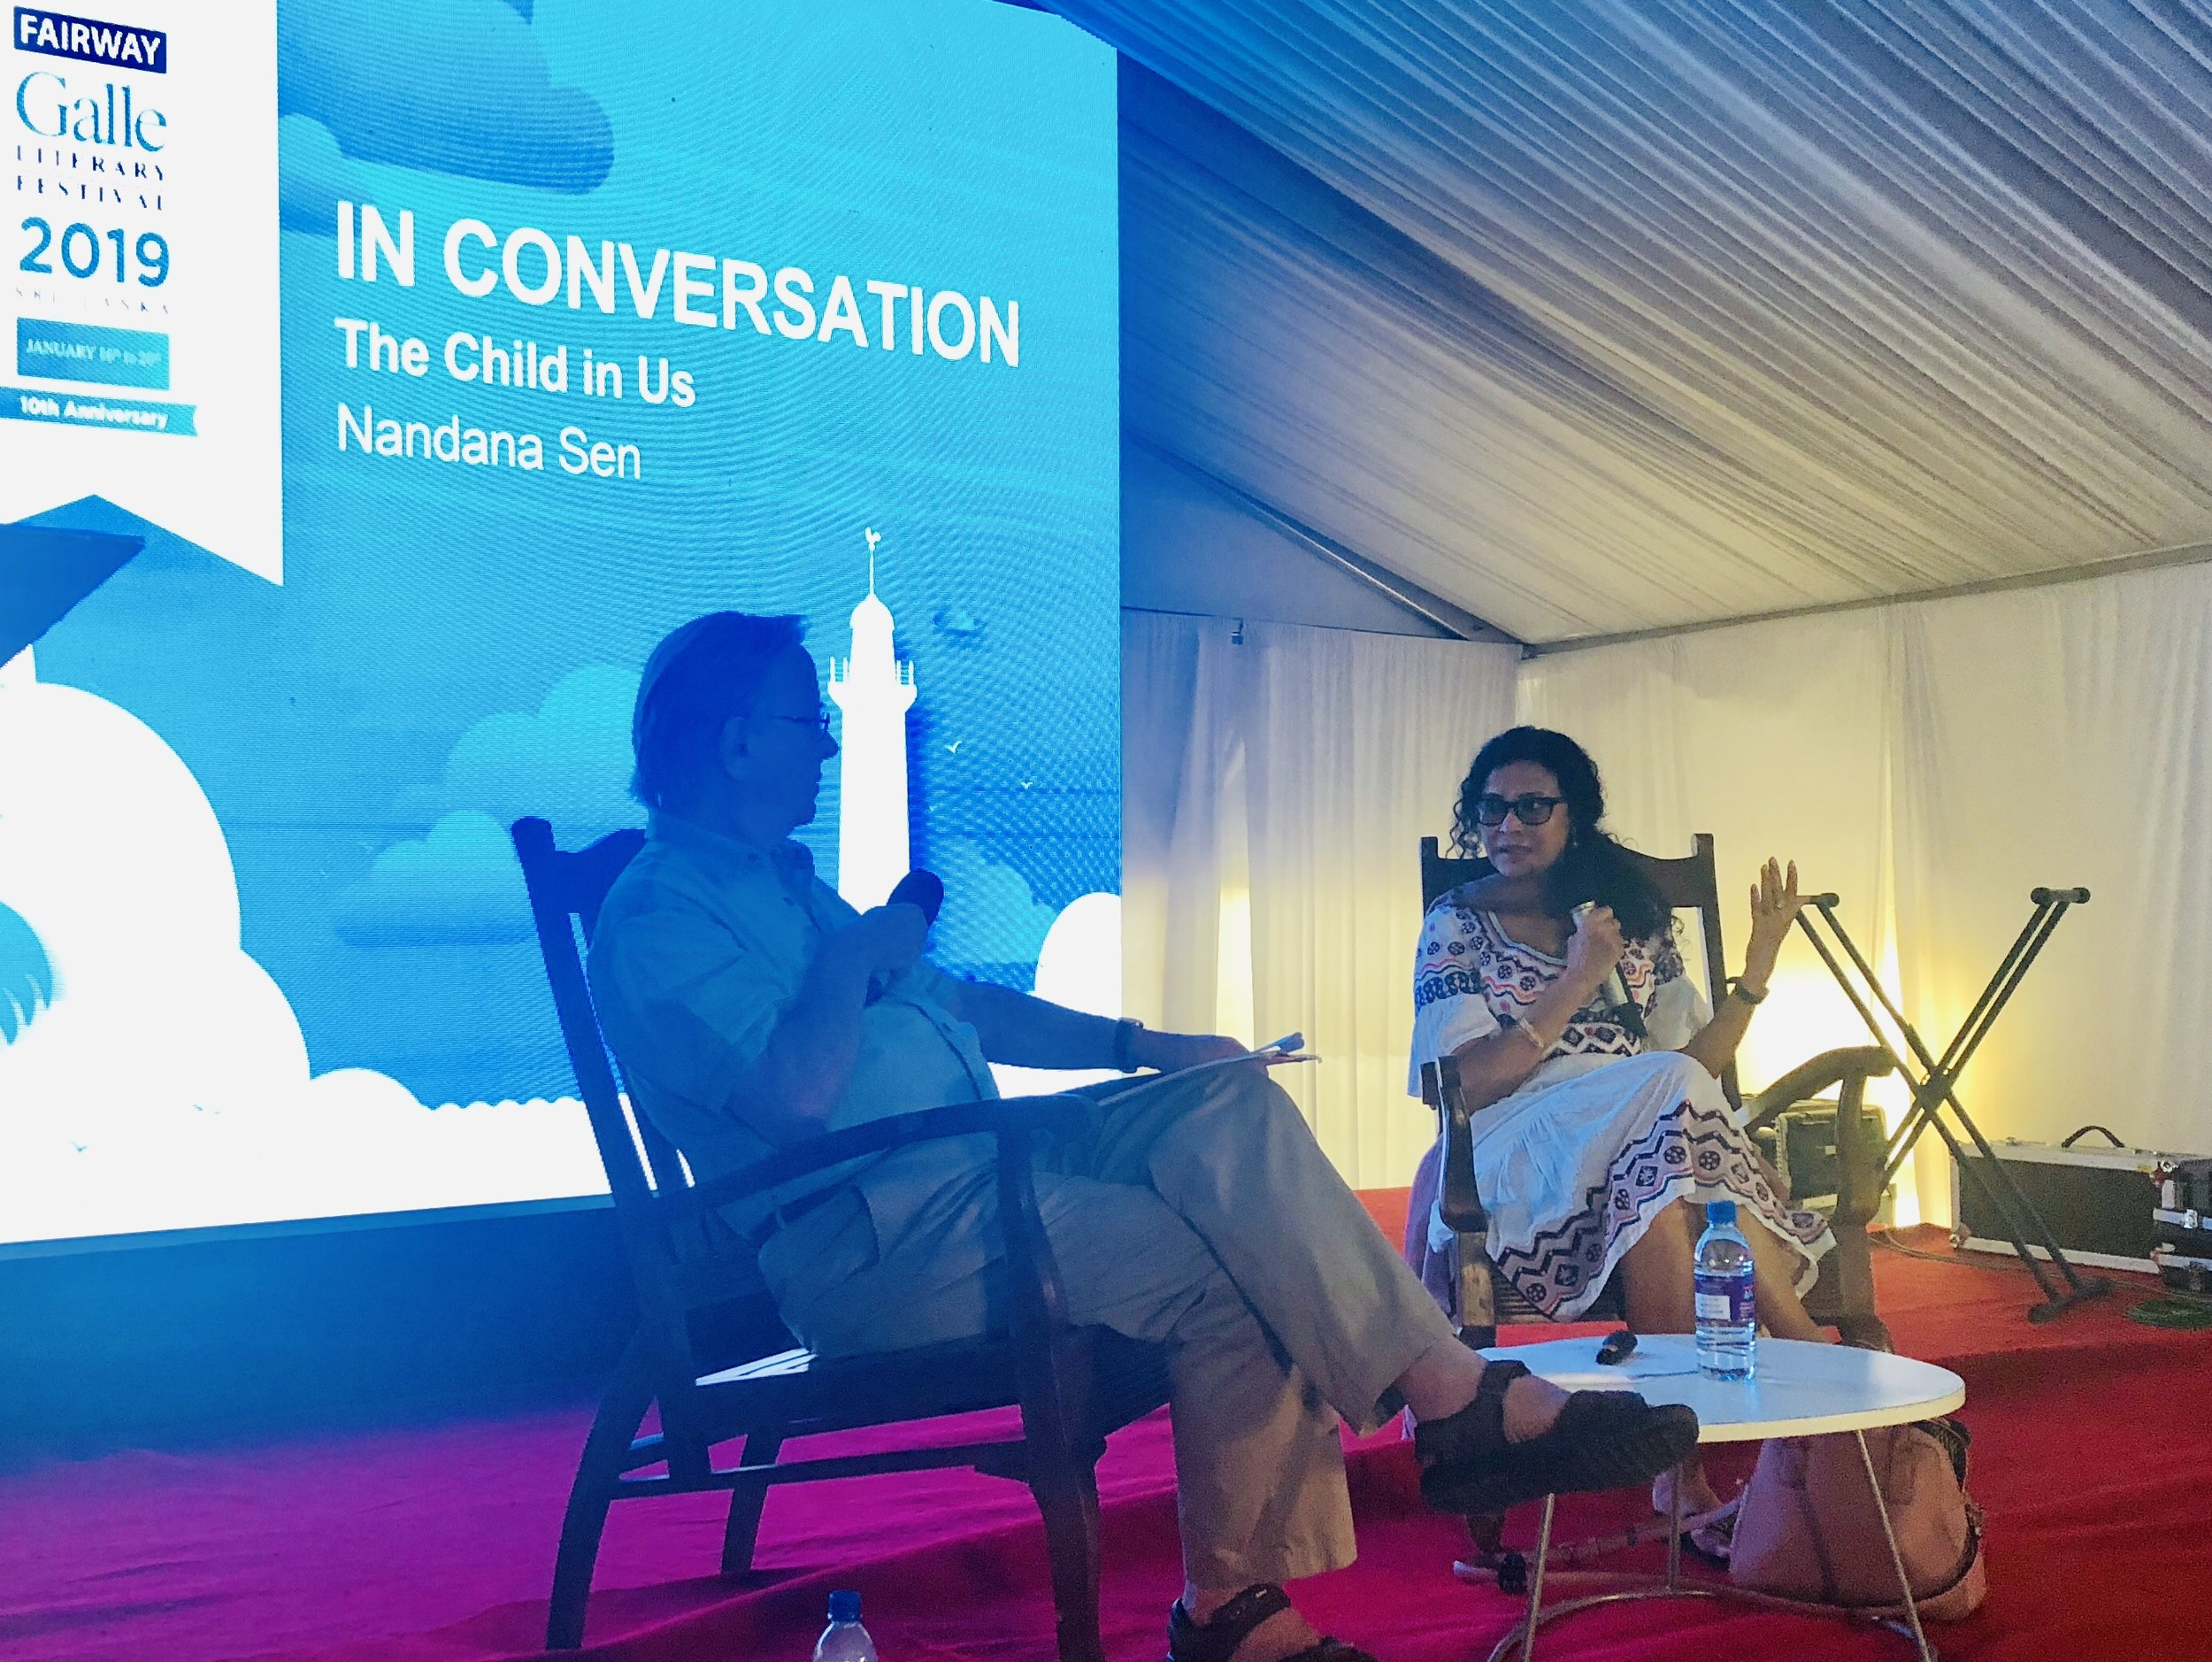 The Child In Us: Nandana Sen speaks about the rights of children and her work in child protection at the Fairway Galle Literary Festival January 18, 2019